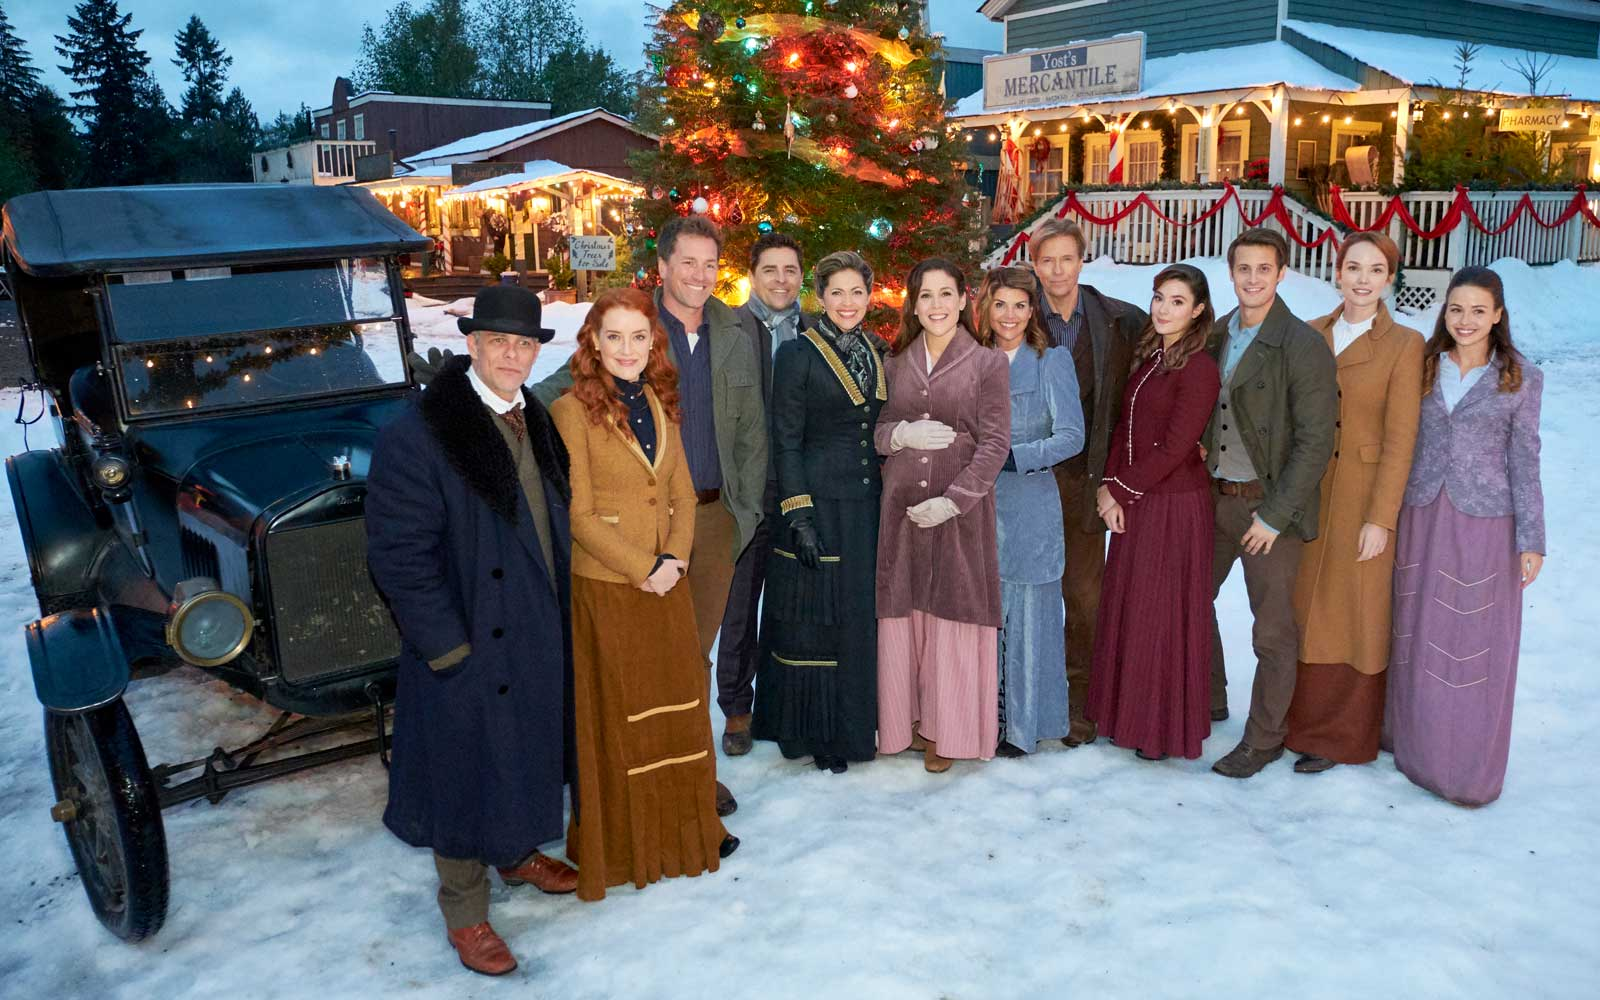 When Calls the Heart, a Hallmark Channel Christmas movie